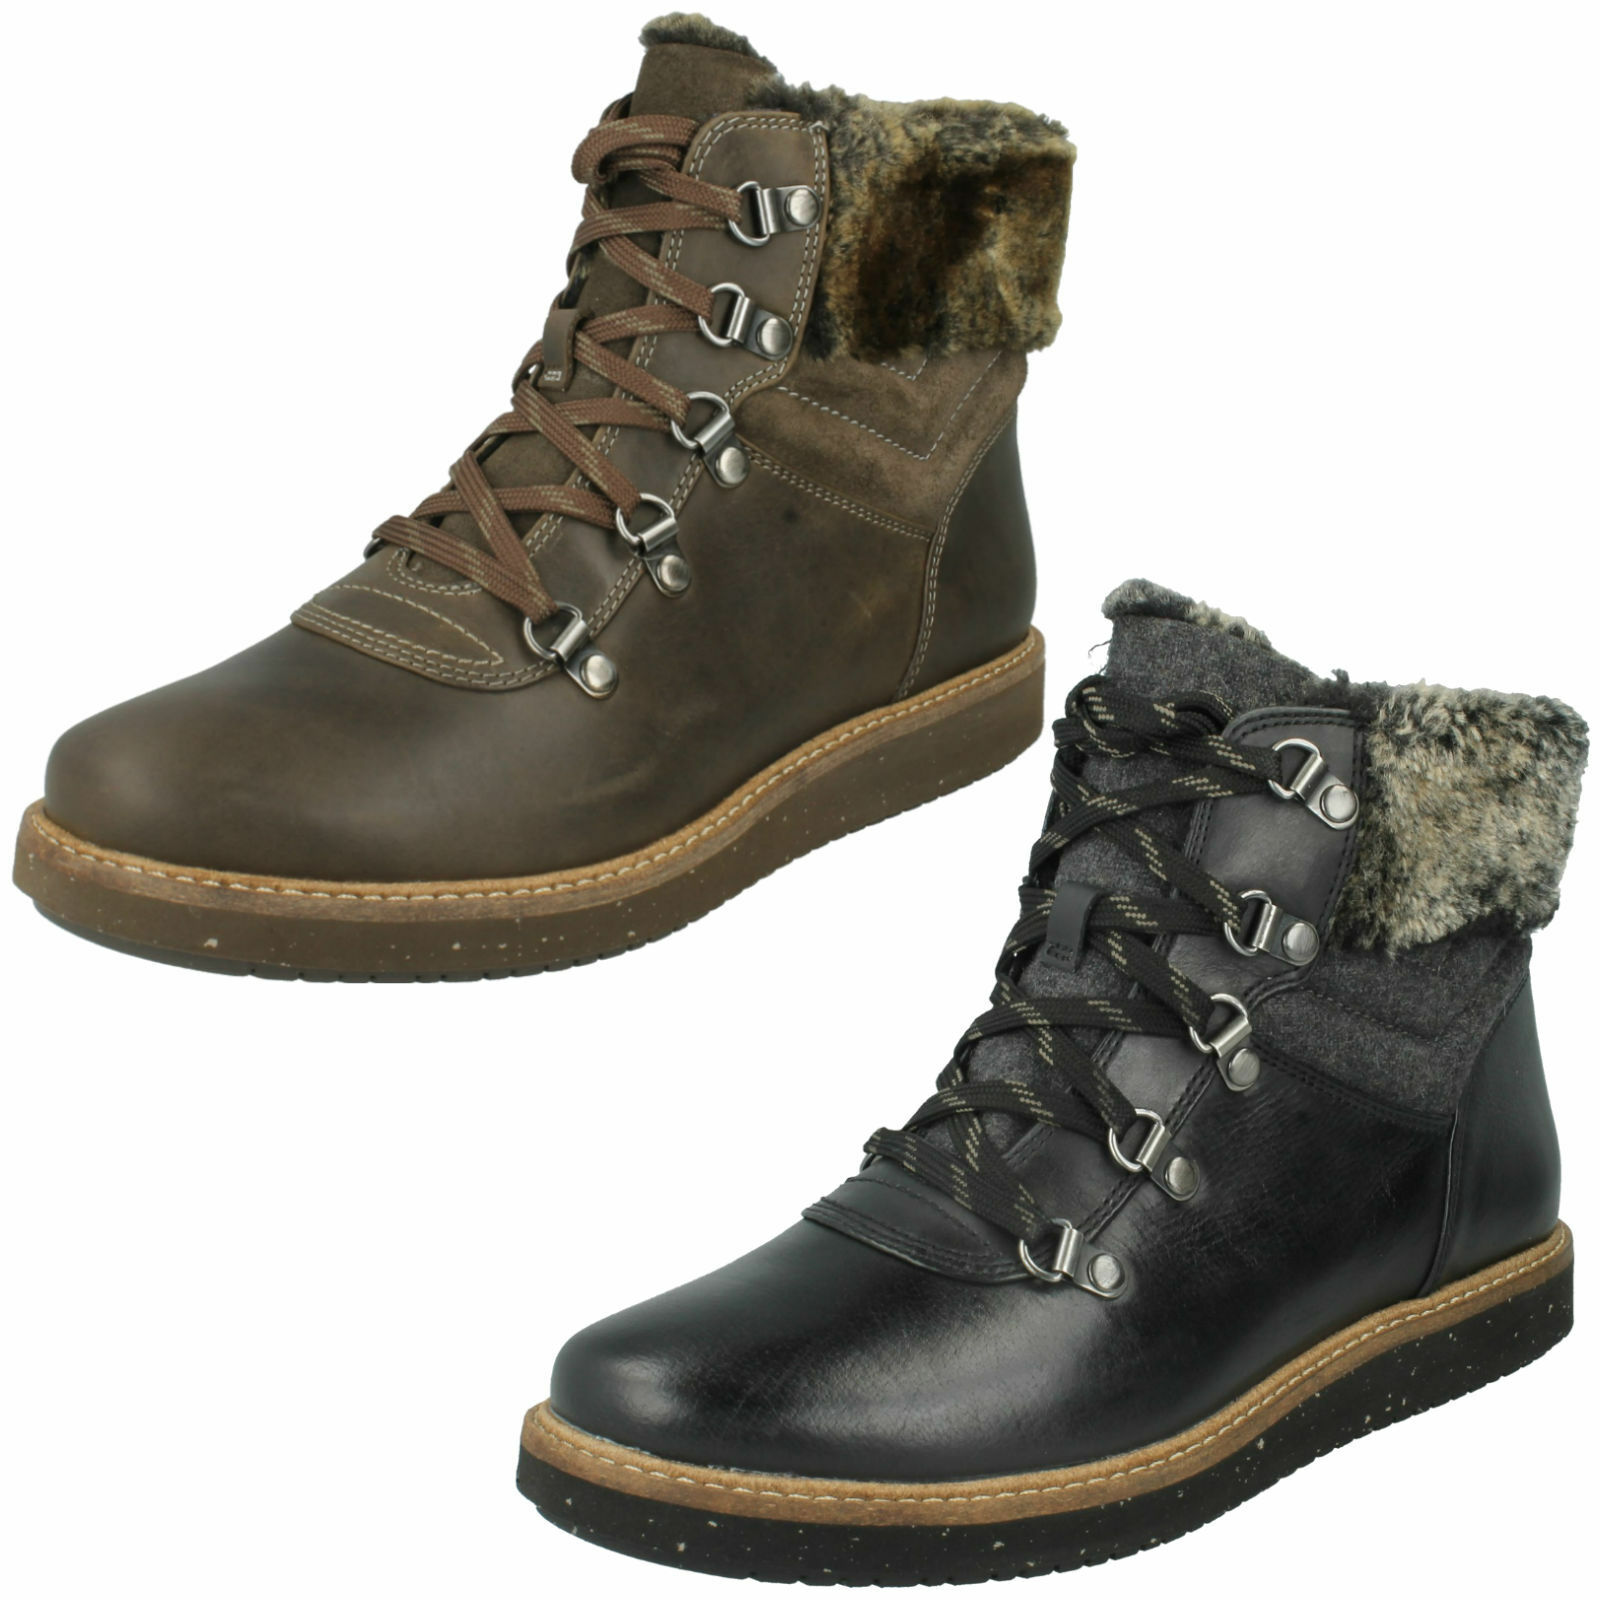 LADIES CLARKS LEATHER FUR TRIM CASUAL LACE UP ANKLE BOOTS GLICK CLARMONT